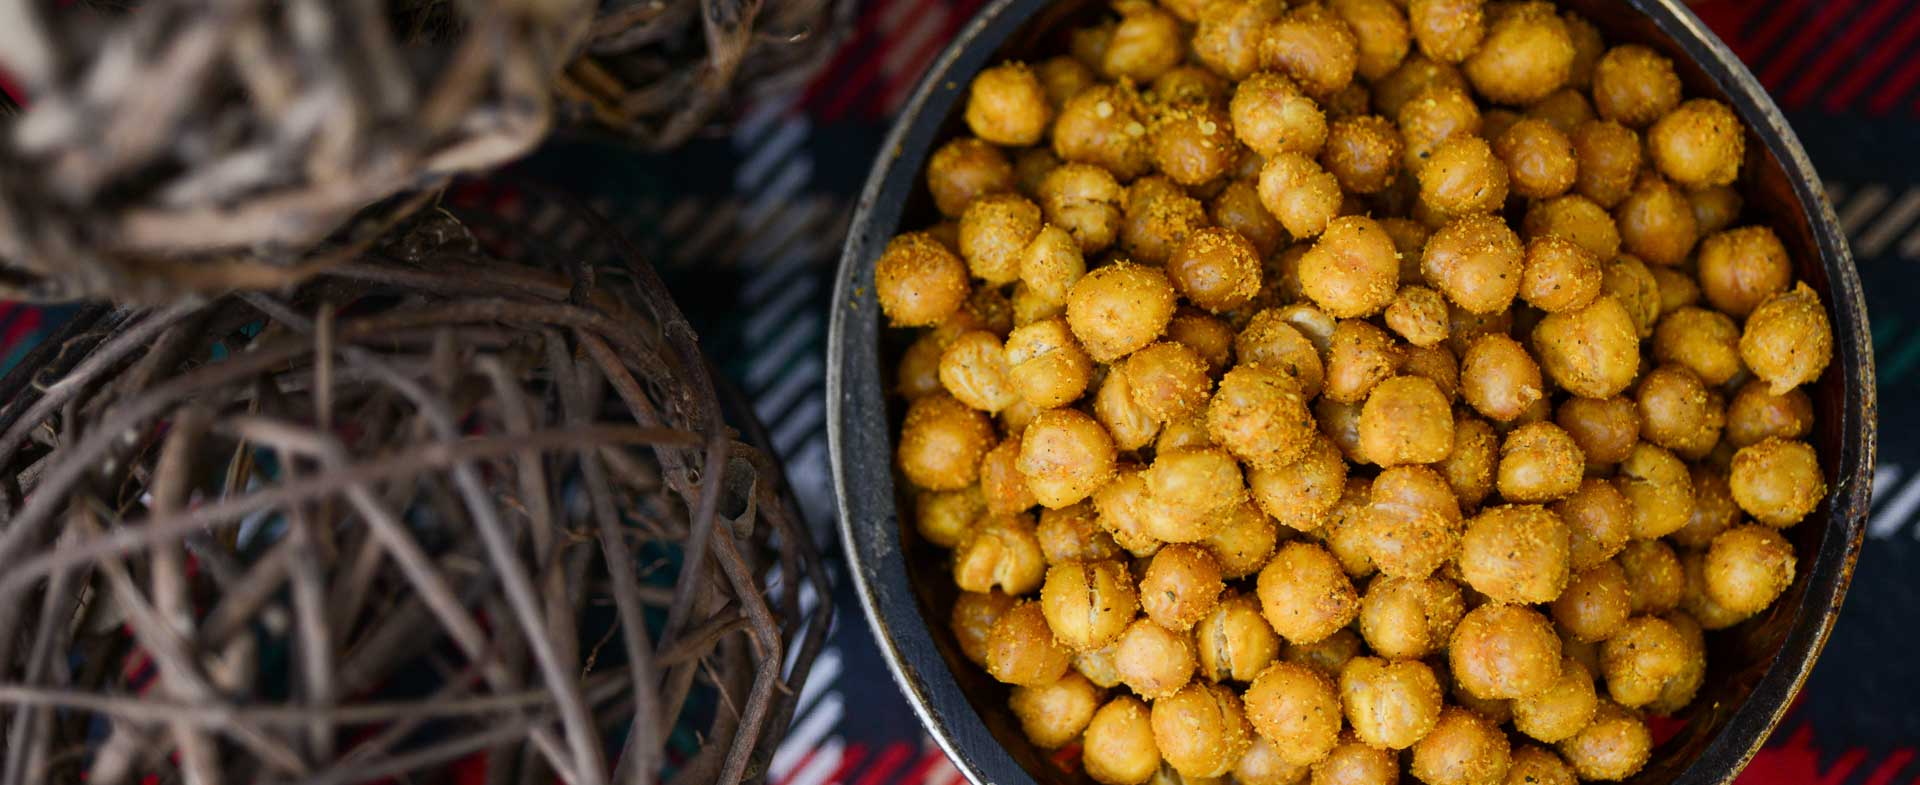 spicy garlic and turmeric roasted chickpeas